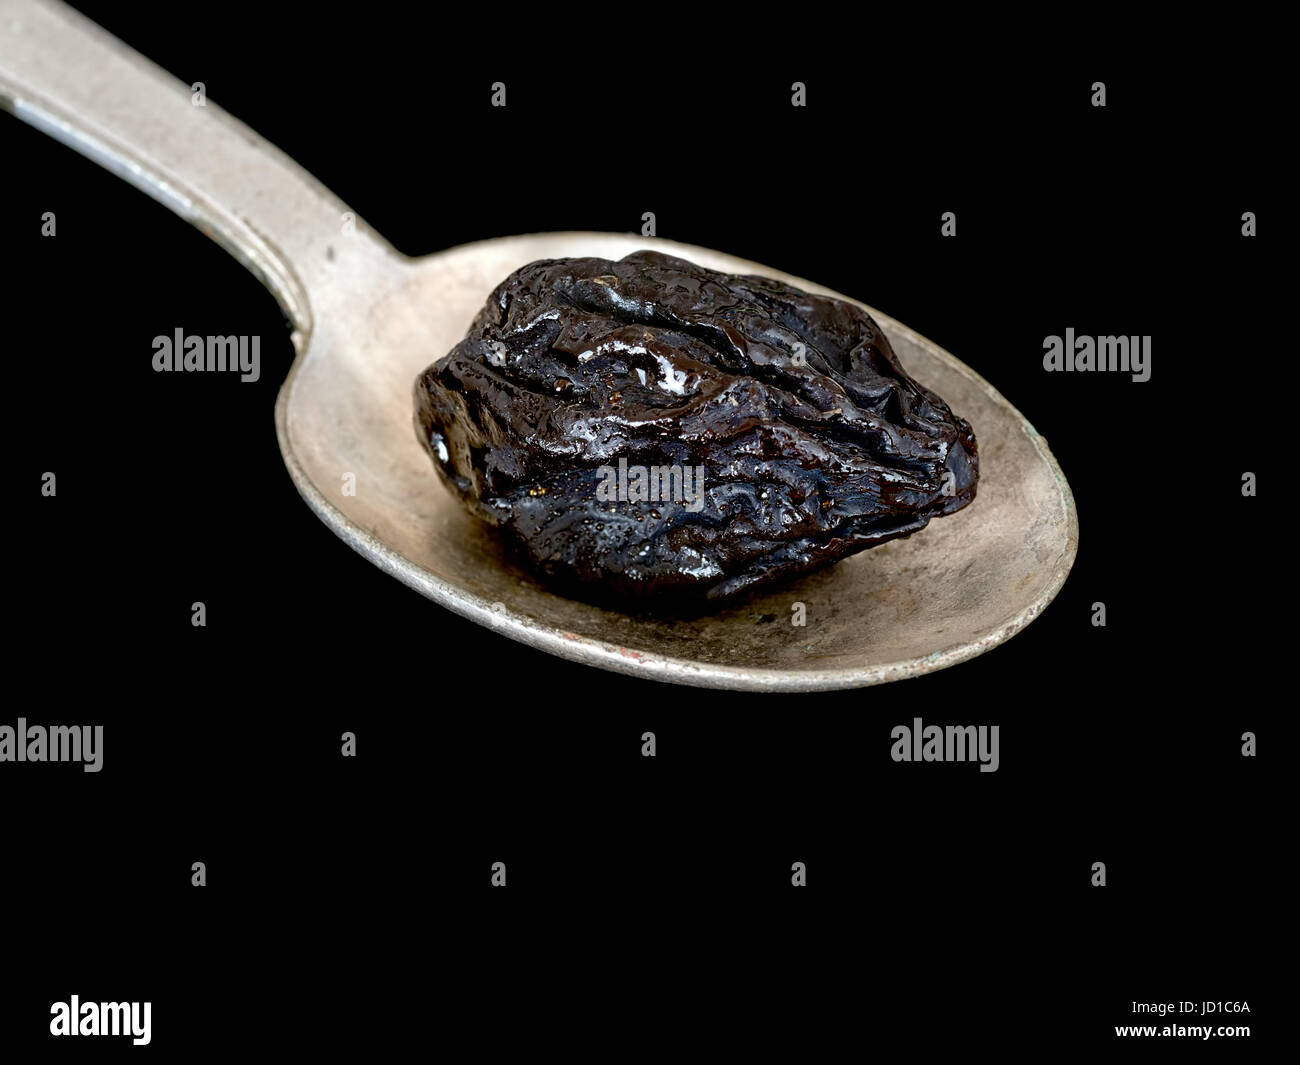 Prune on spoon. High in iron, boron and a traditional, natural remedy for constipation as a natural laxative. - Stock Image